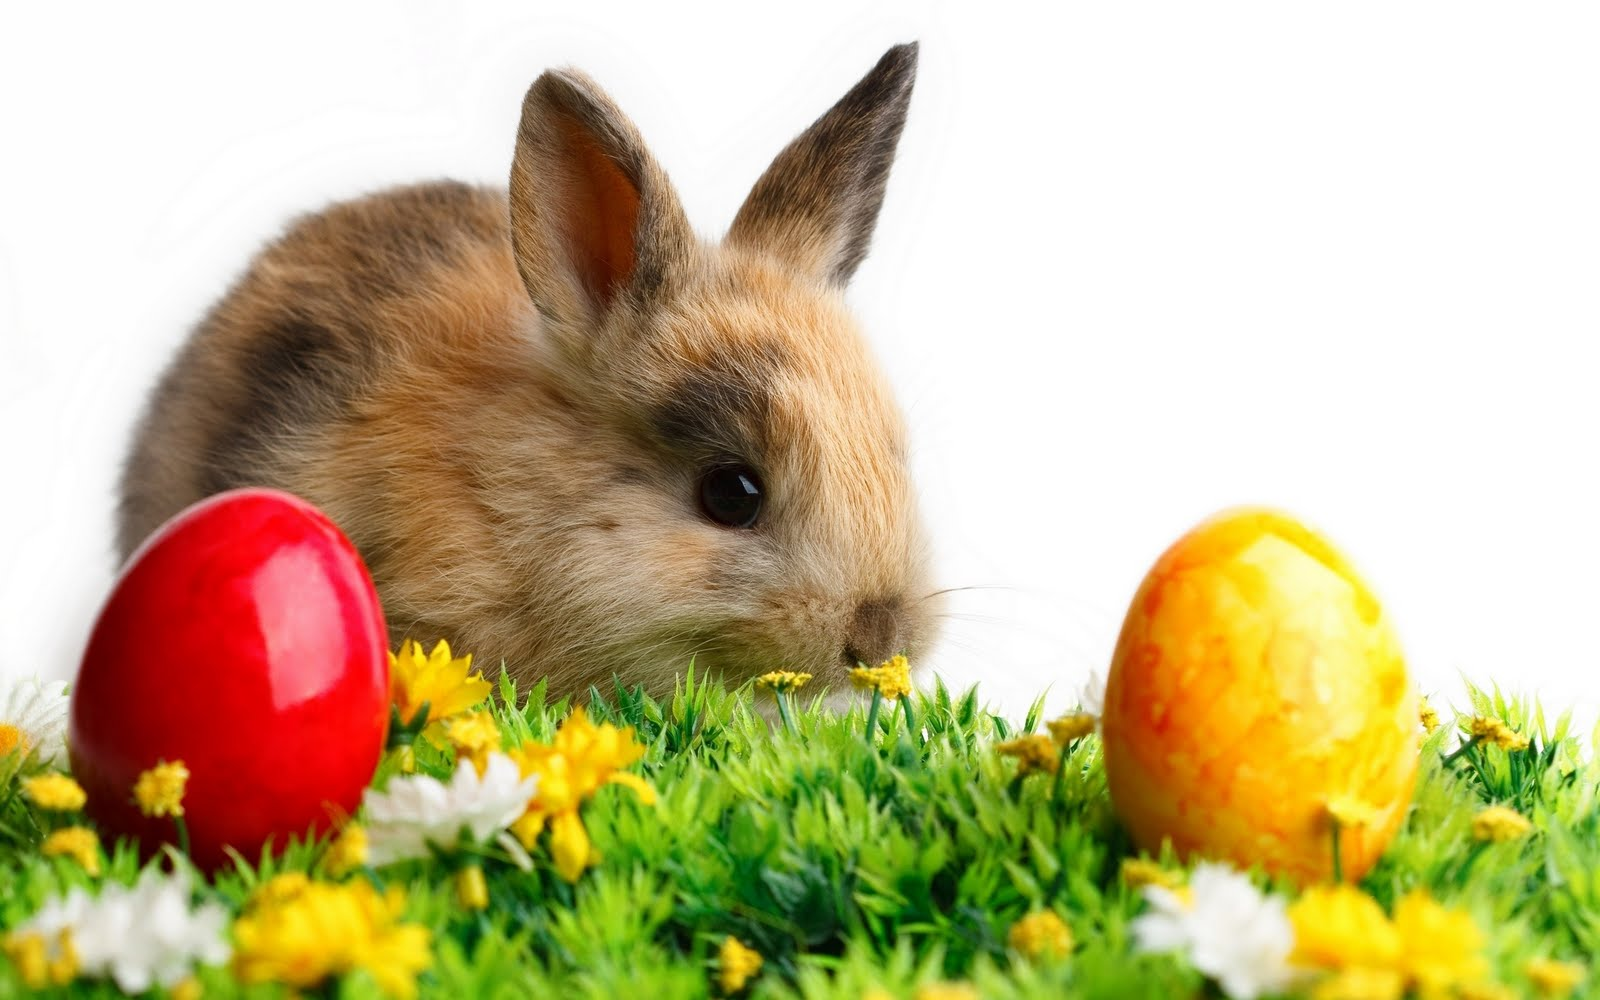 Description Happy Easter Bunny Wallpaper is a hi res Wallpaper for pc 1600x1000